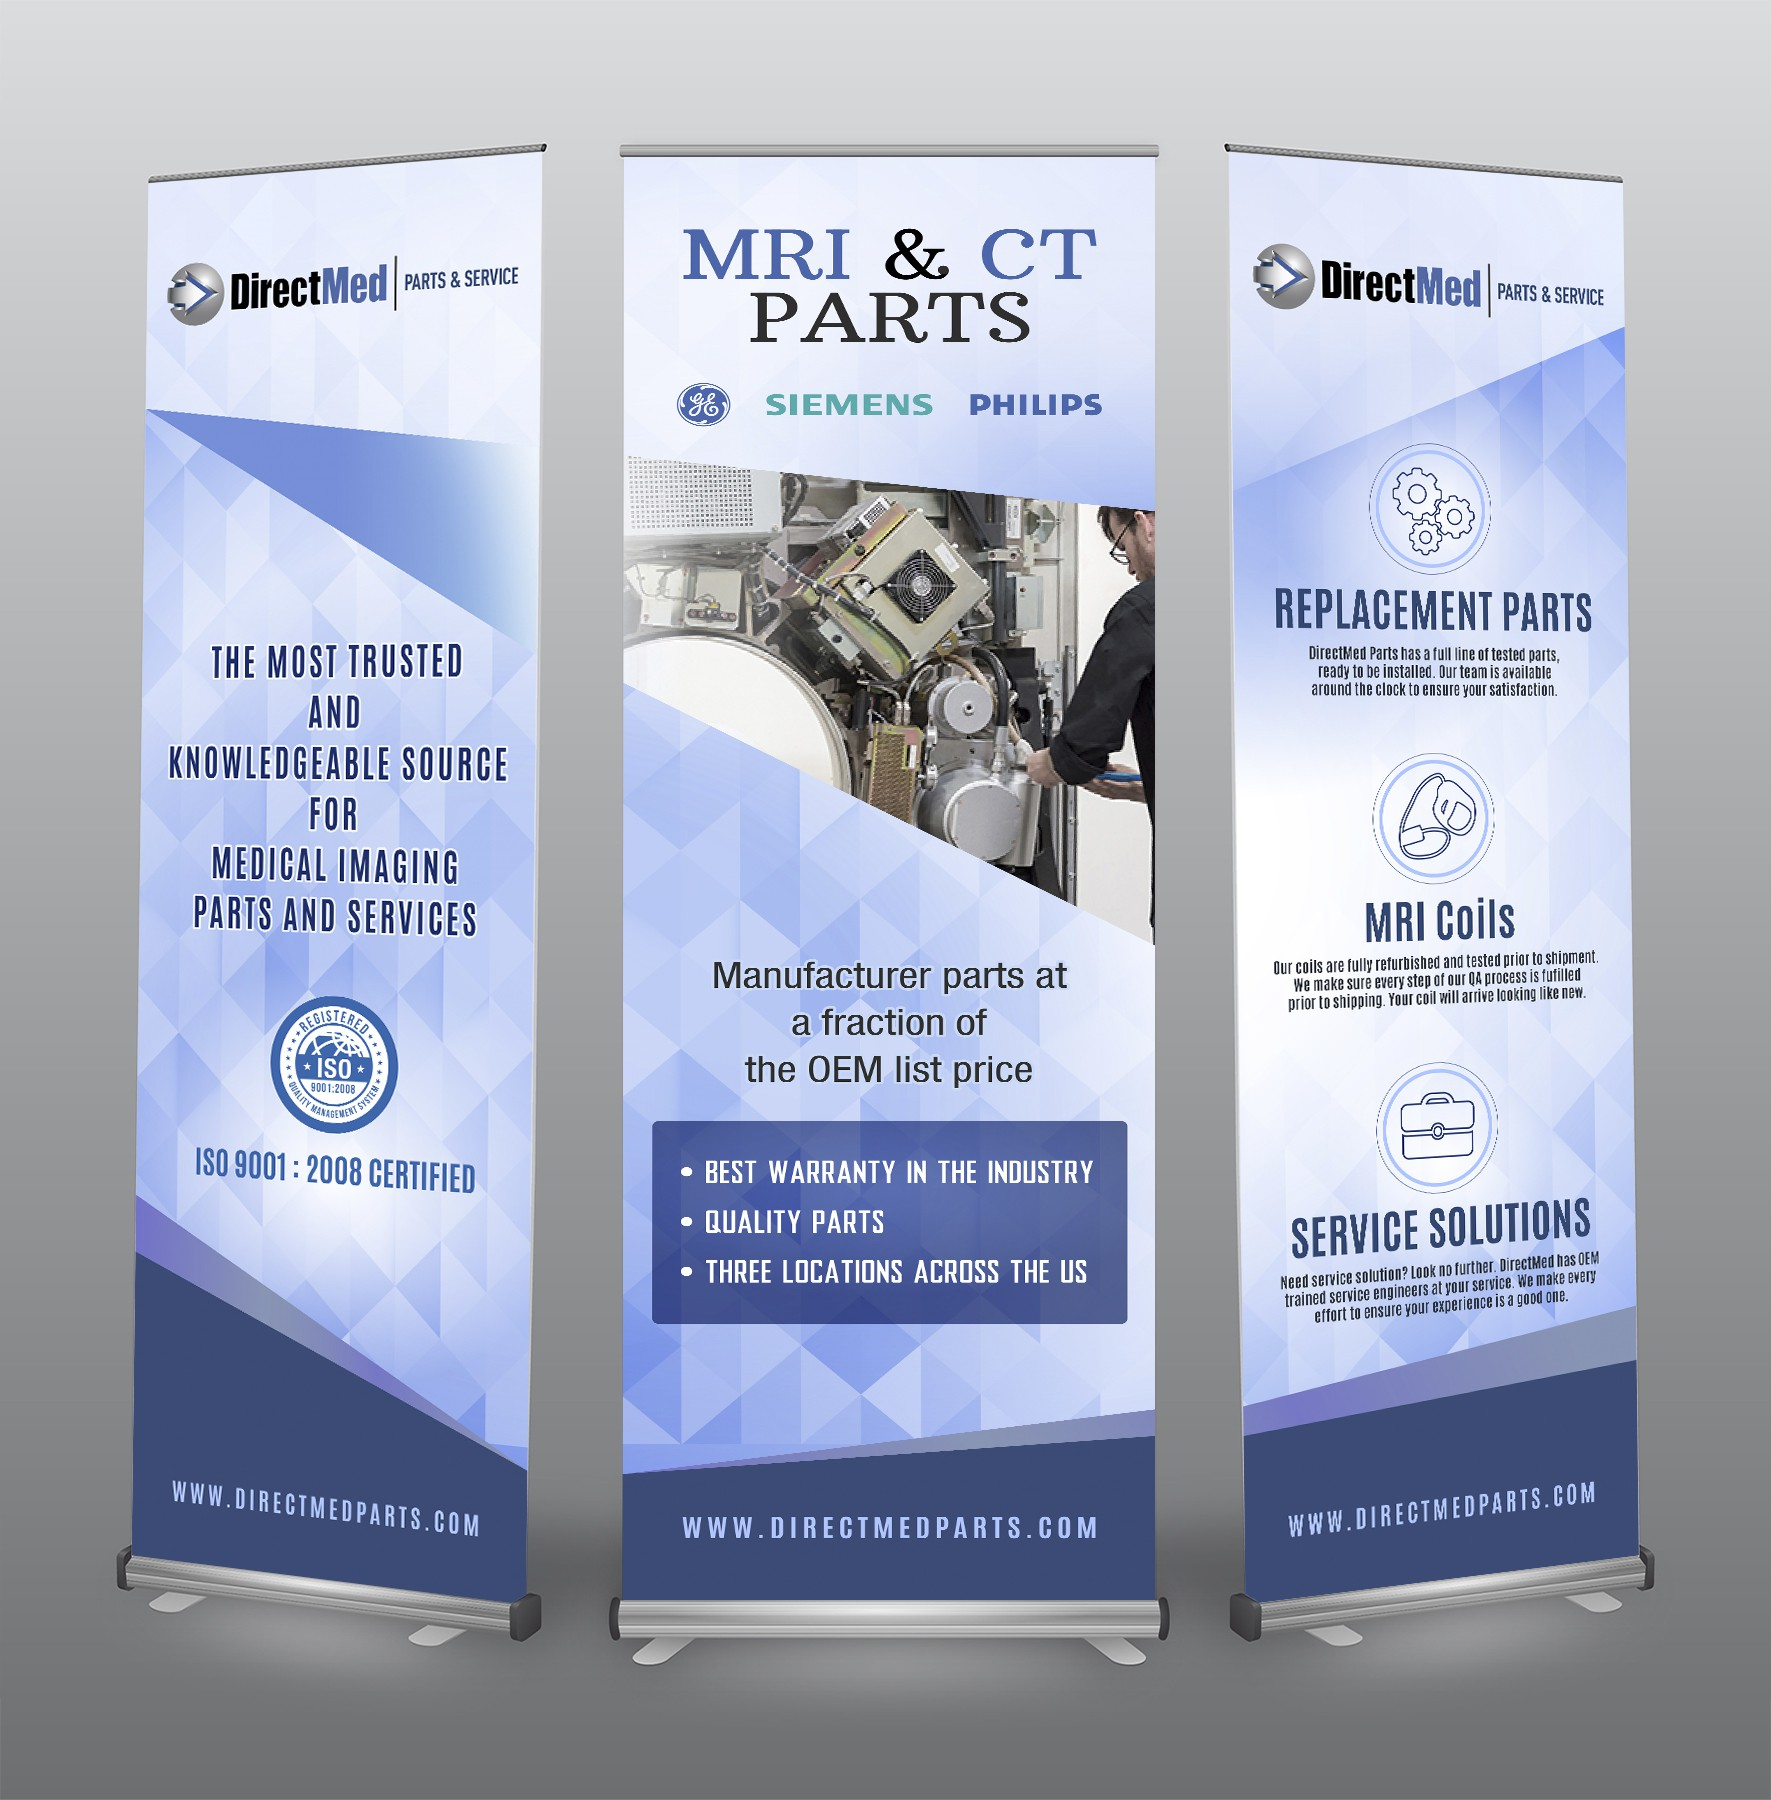 Create a Clean, Modern and Professional Trade Show Banner